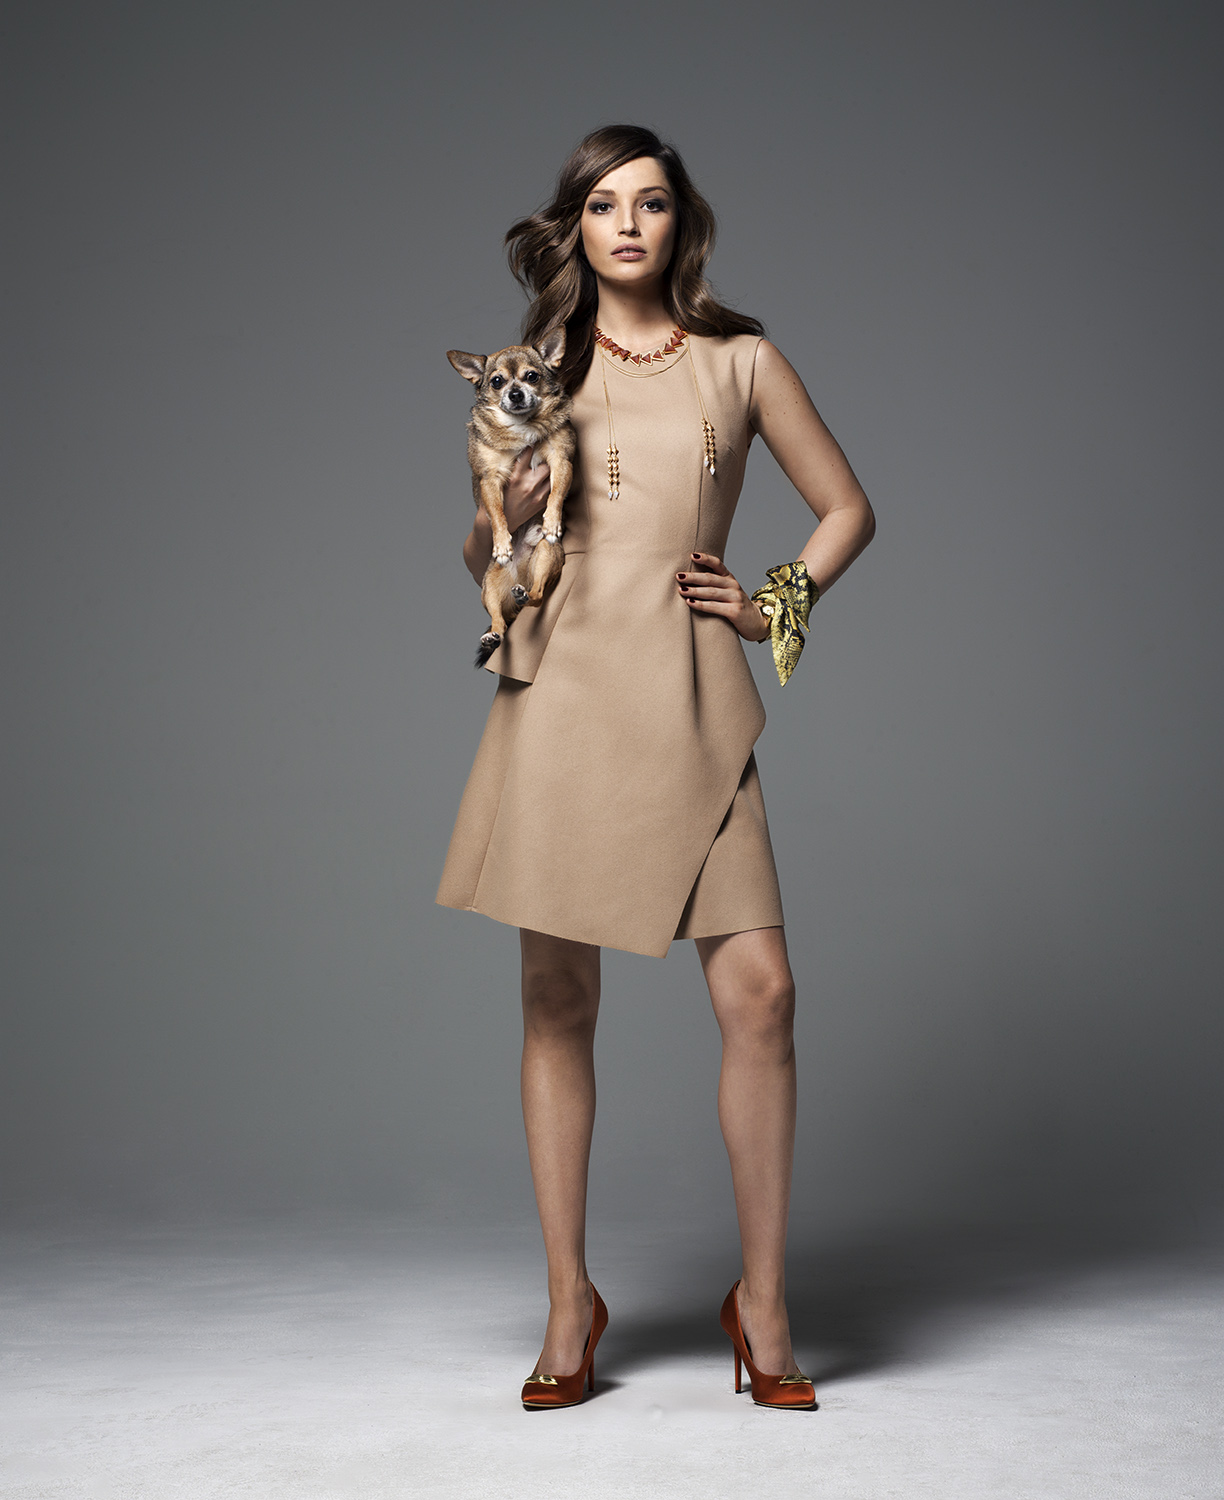 Model wearing tan dress and holding a dog